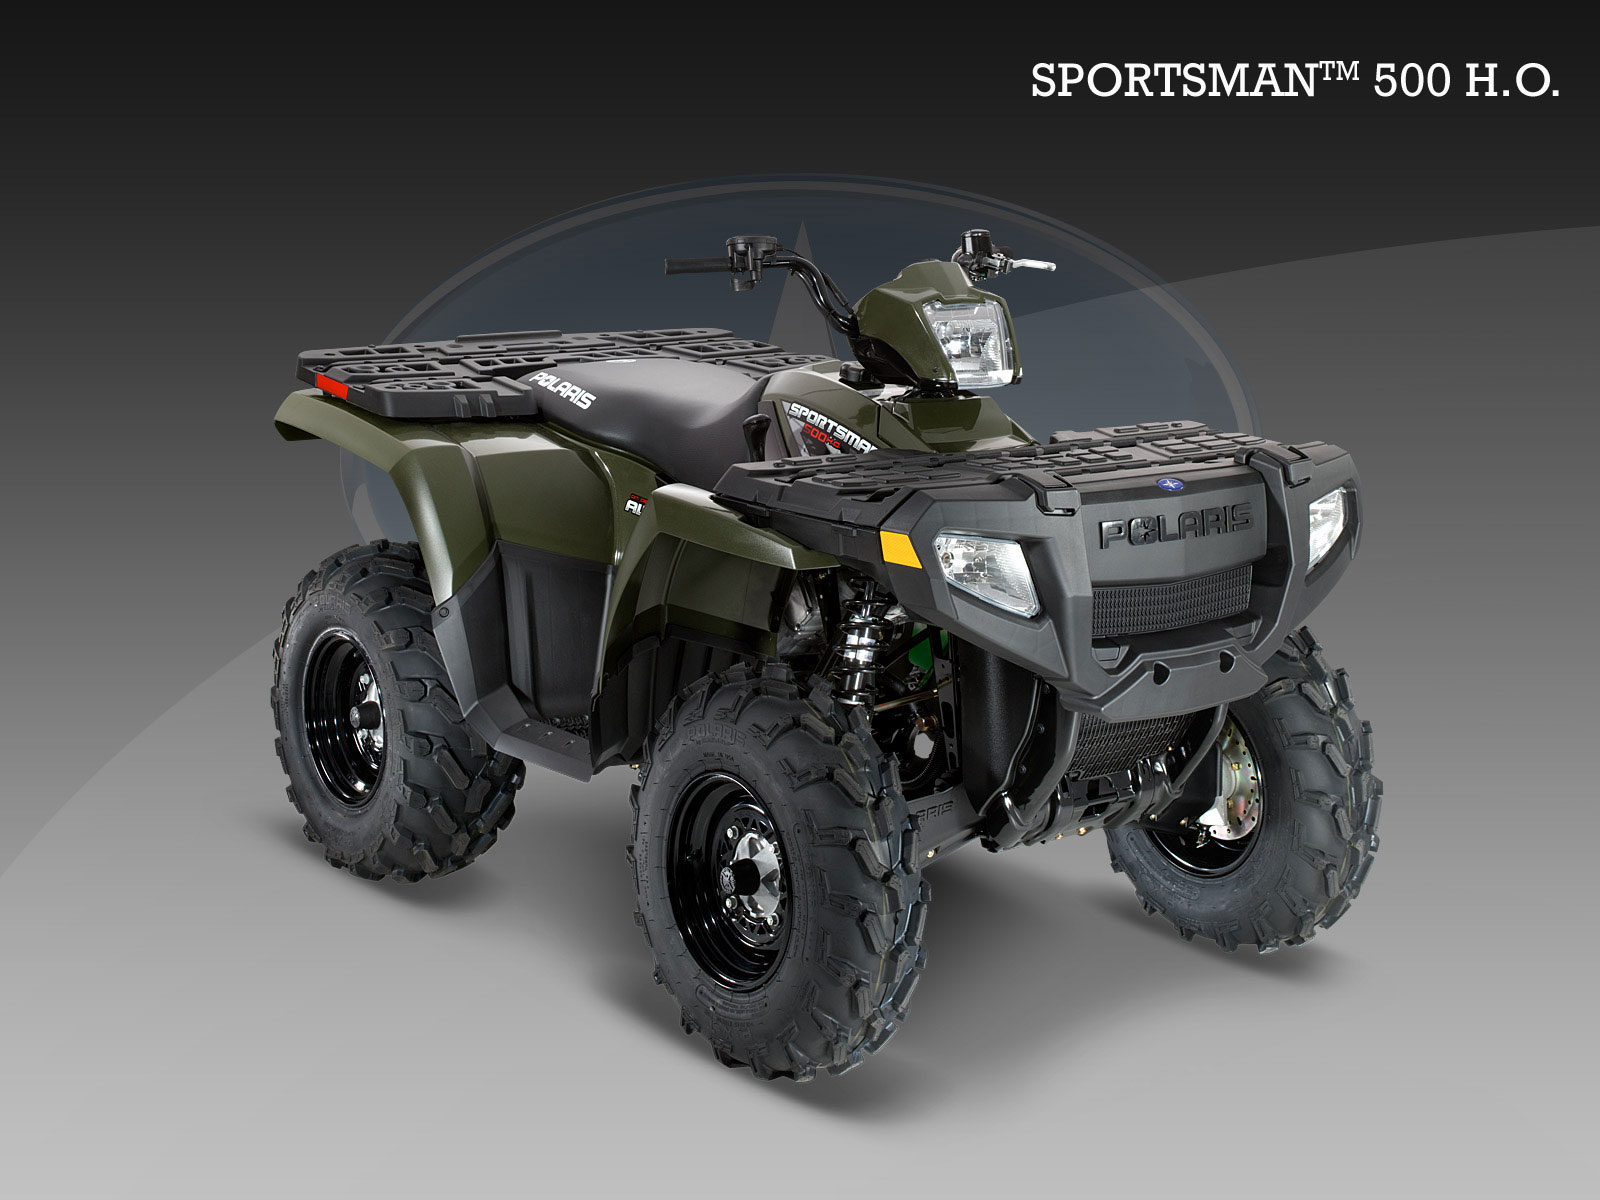 hight resolution of  polaris sportsman 500 h o 2000 images 120694